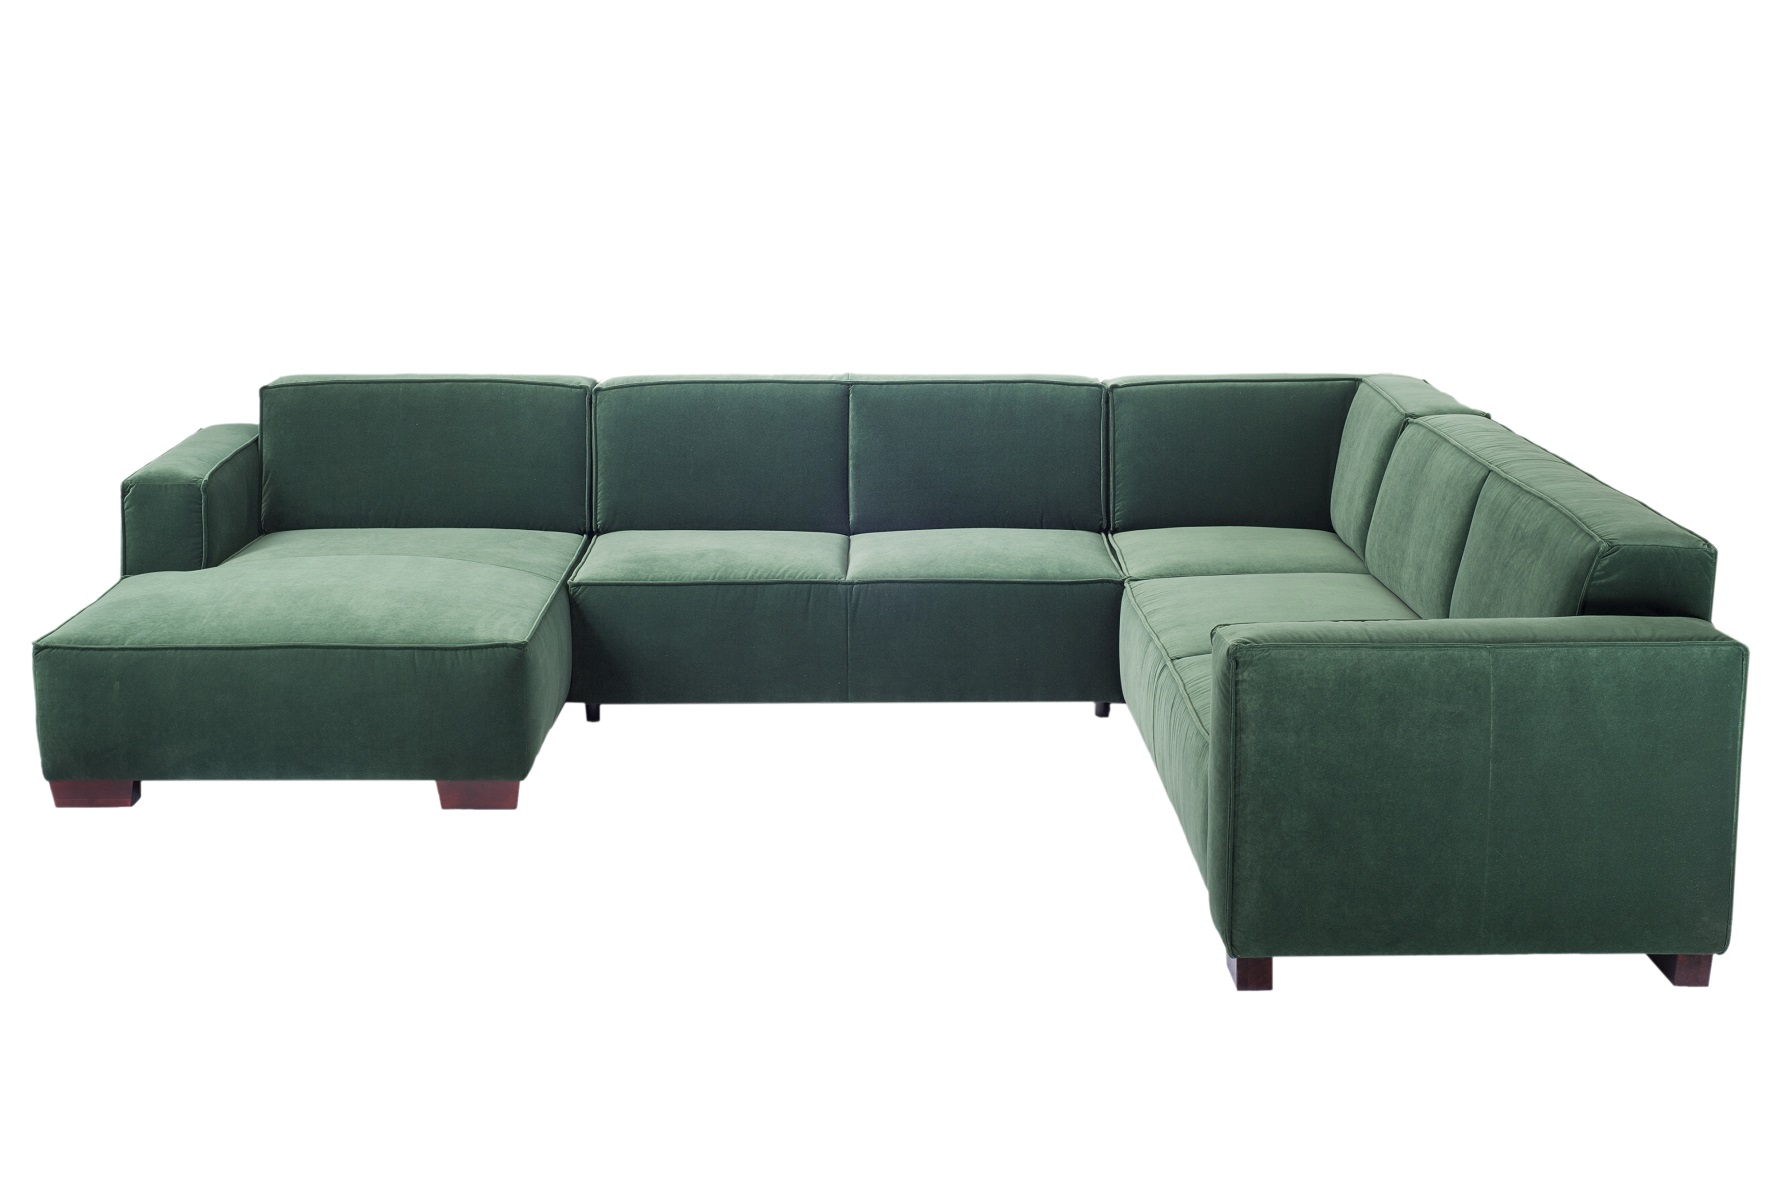 nowoczesna modulowa sofa manor maduu studio ideal design